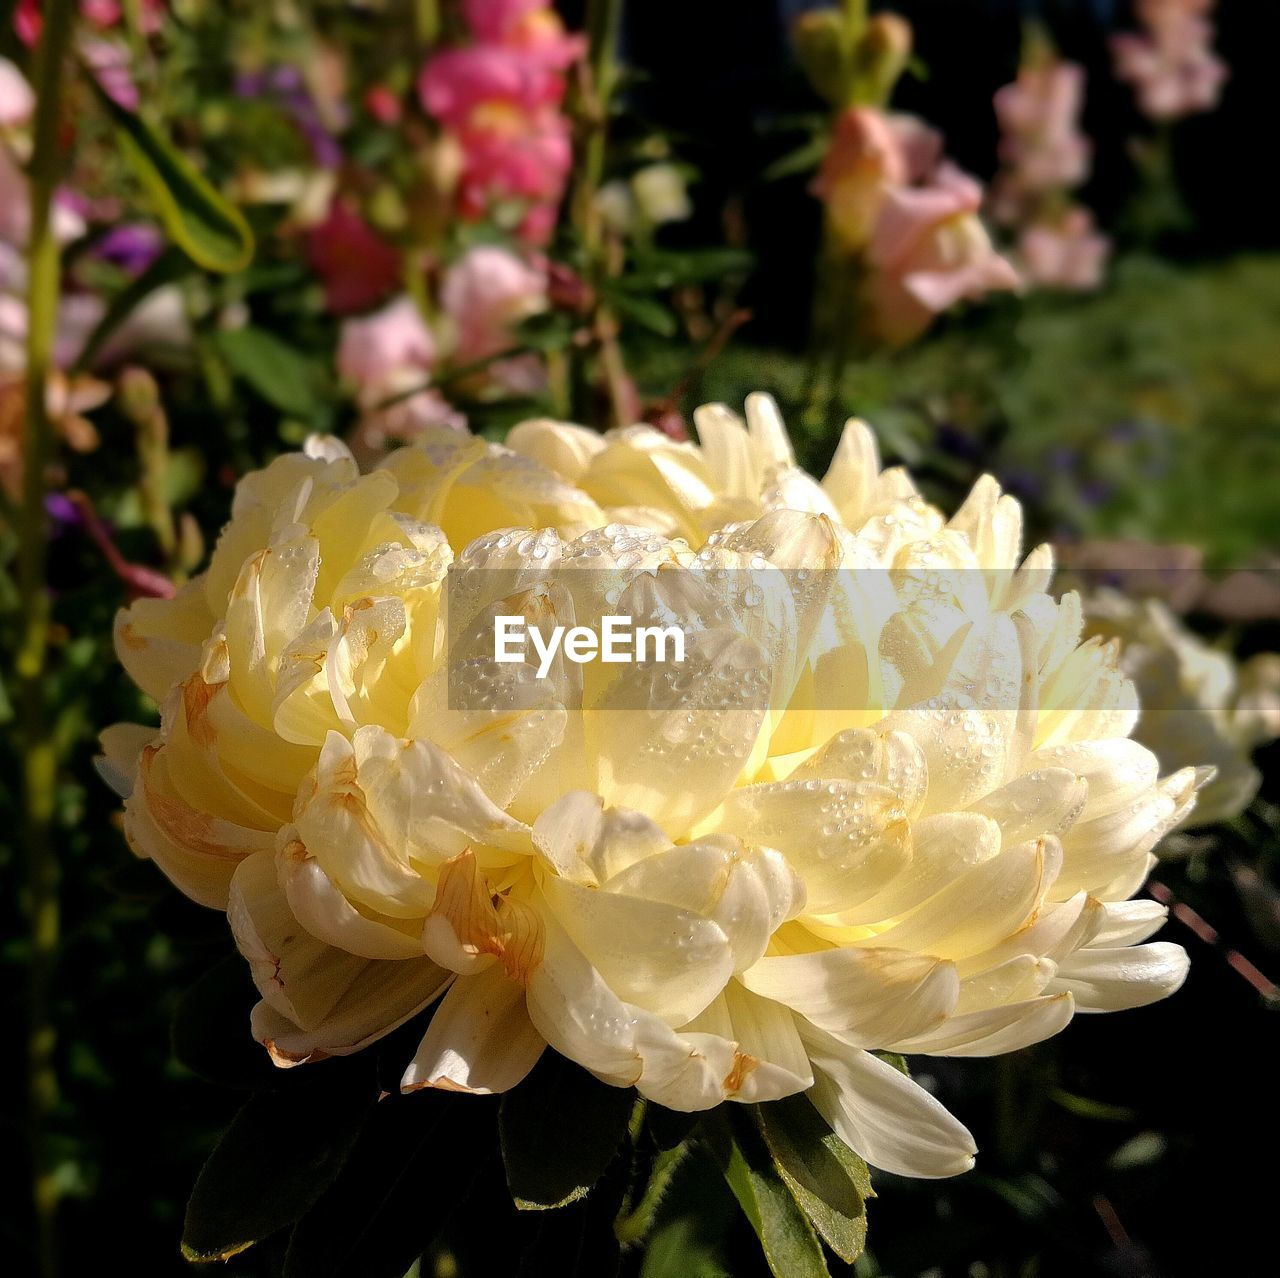 flower, petal, fragility, beauty in nature, flower head, freshness, nature, plant, outdoors, growth, close-up, white color, blooming, day, yellow, focus on foreground, no people, rose - flower, sunlight